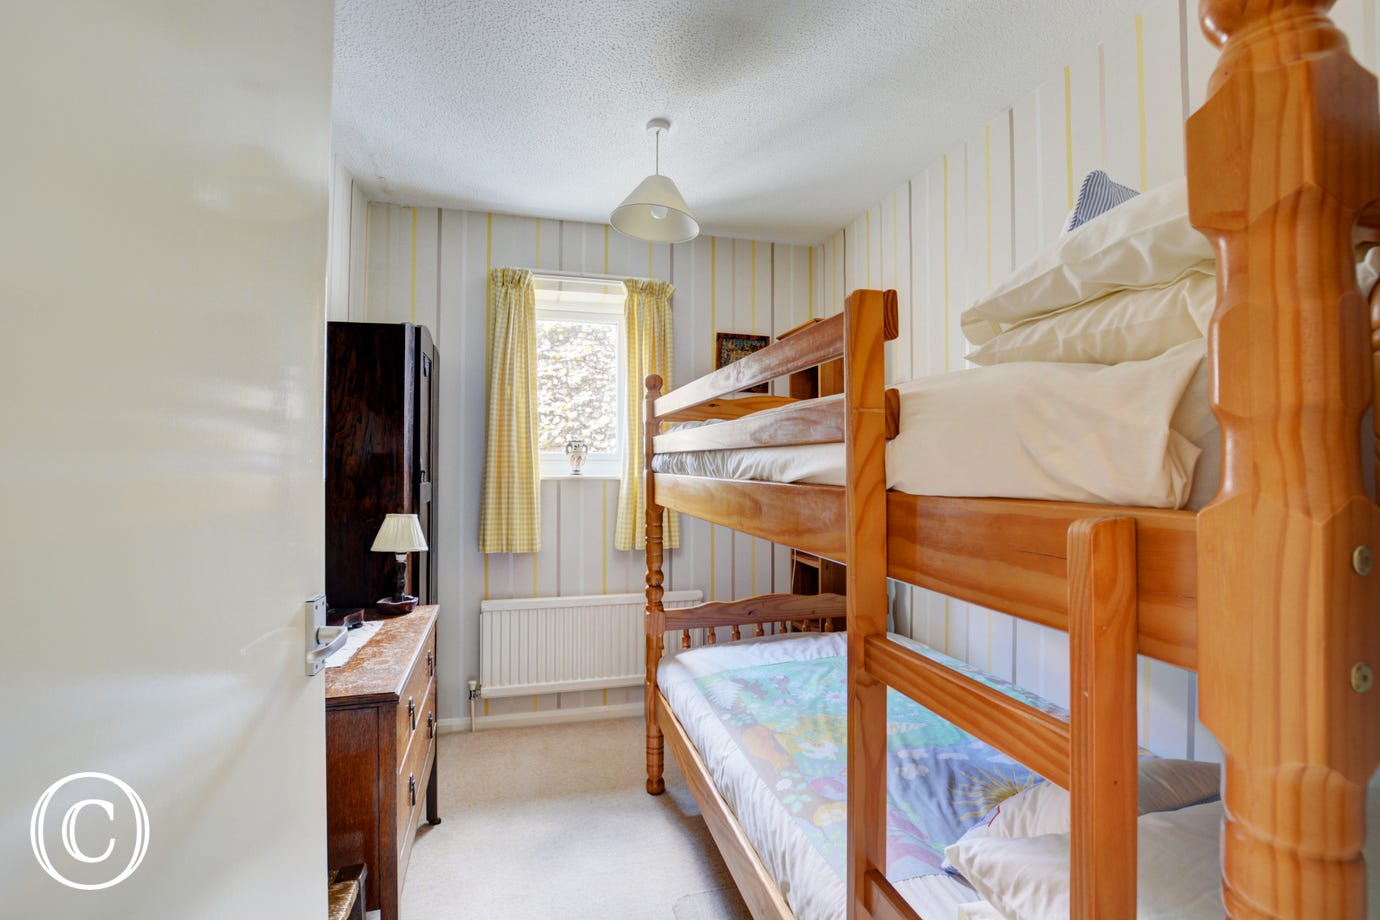 Cottage style bedroom with wooden bunk beds, perfect for children